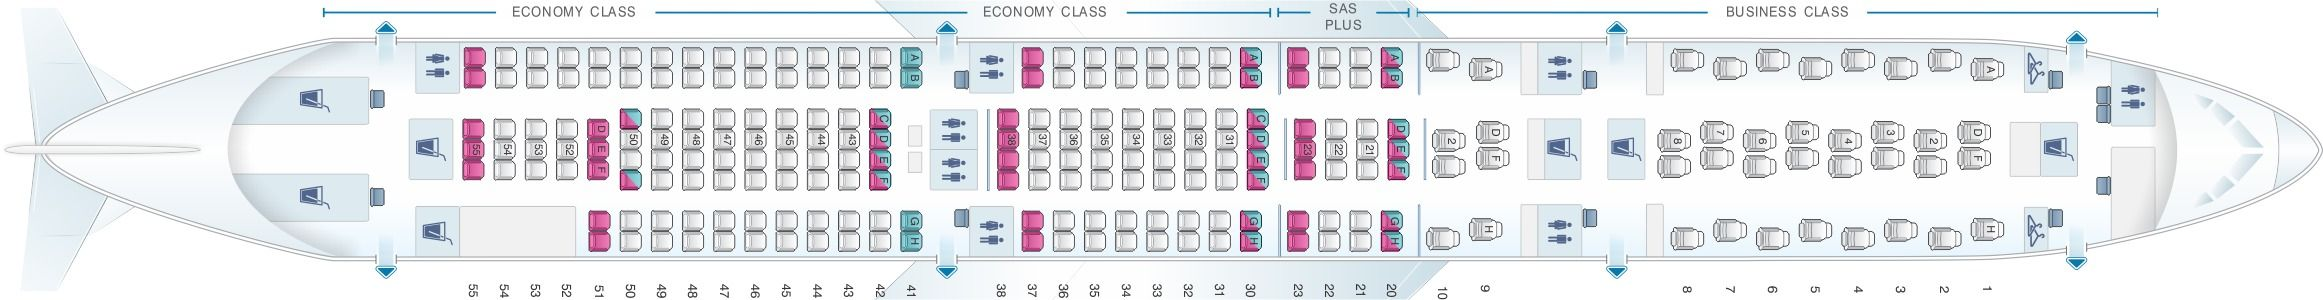 Seat Map And Seating Chart Airbus A340 300 Scandinavian Airlines Sas Asiana Airlines Malaysia Airlines Airlines